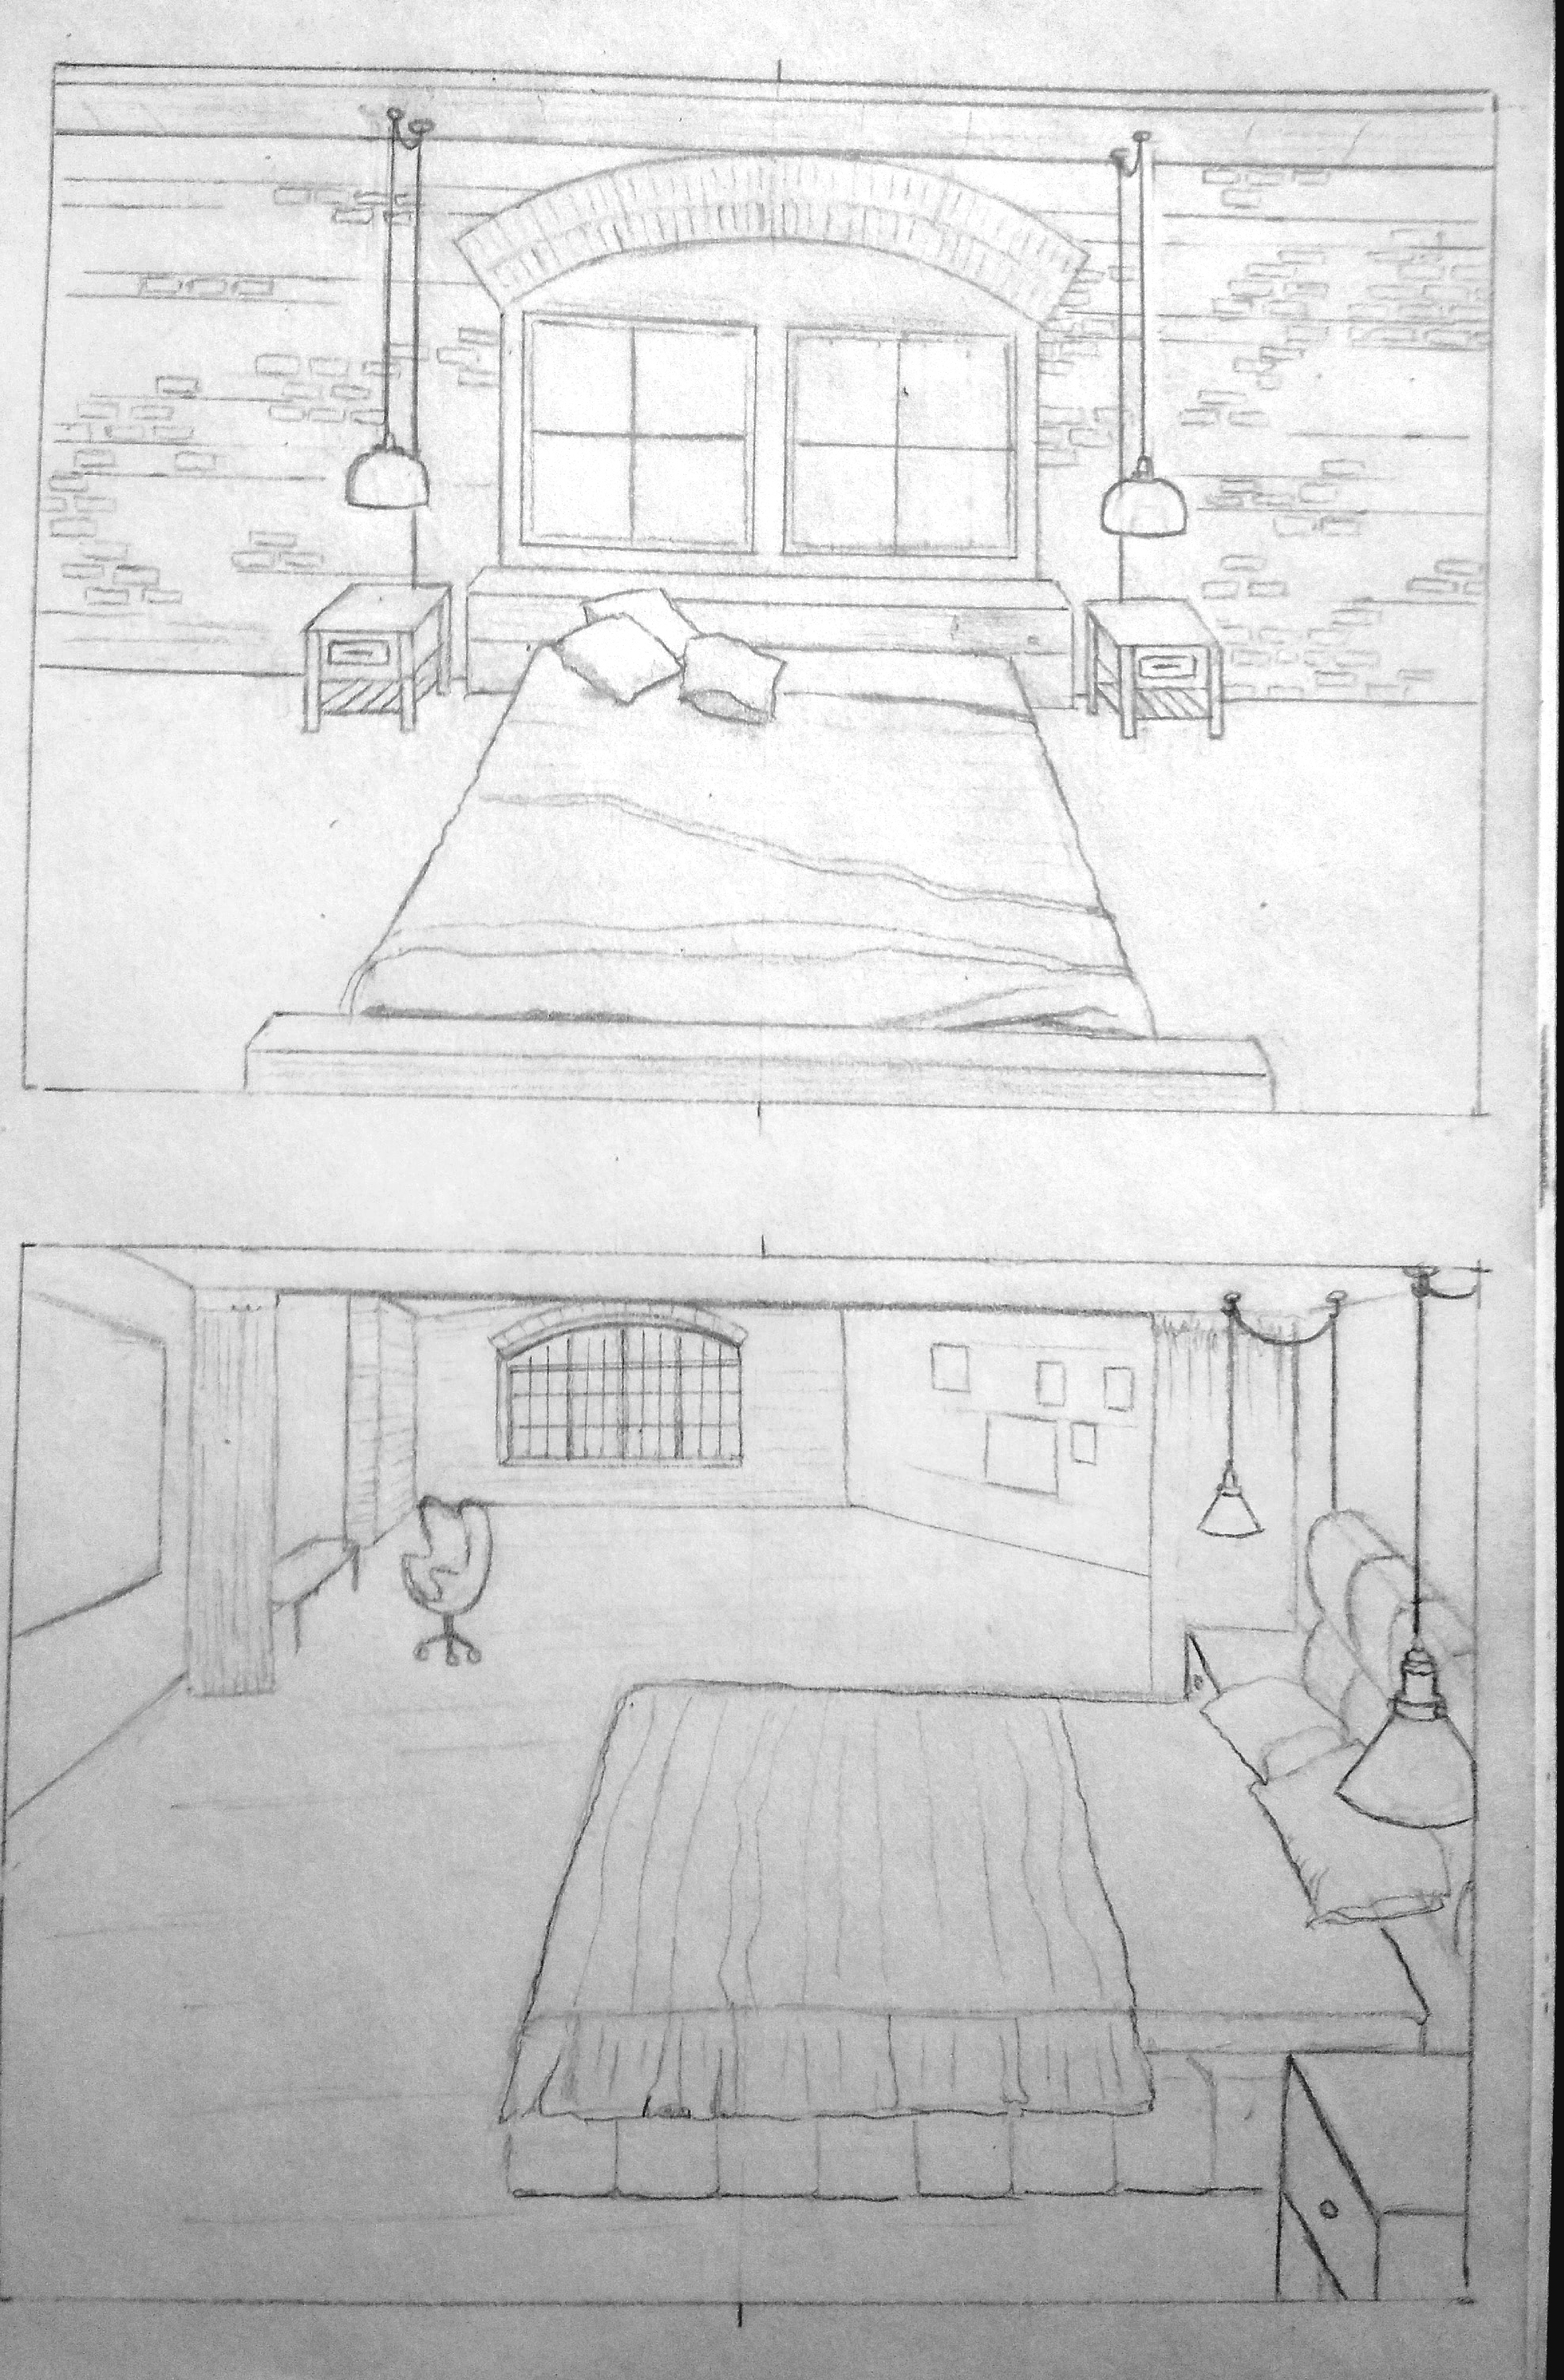 bedroom, sketch, sketches, drawing, pencil, illustration, technical